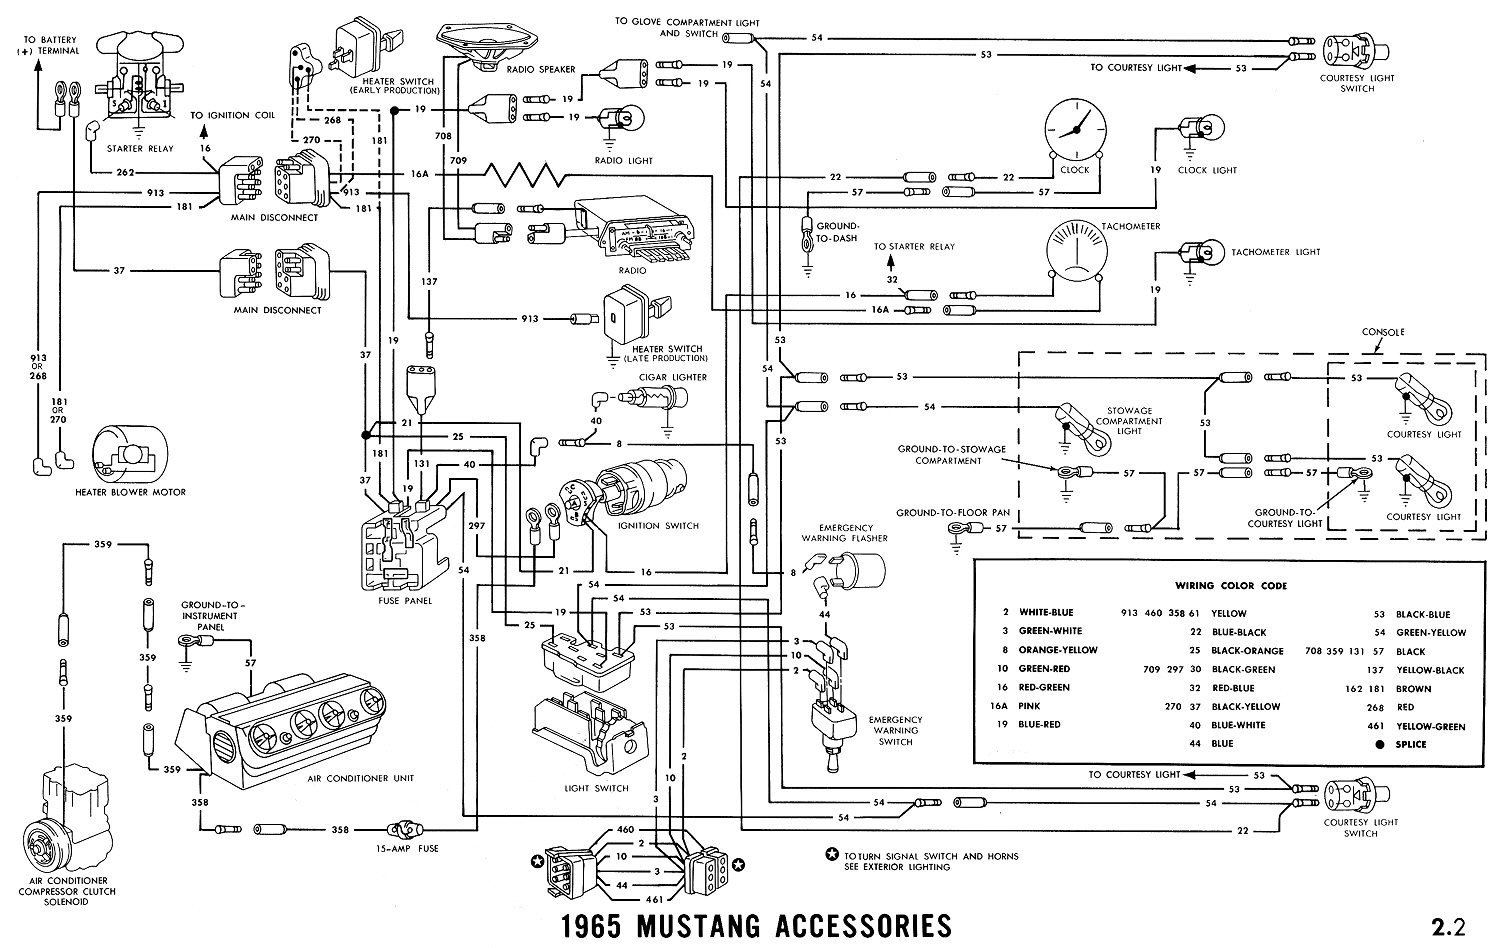 1965i 1965 mustang wiring diagrams average joe restoration mustang wiring diagrams at gsmx.co